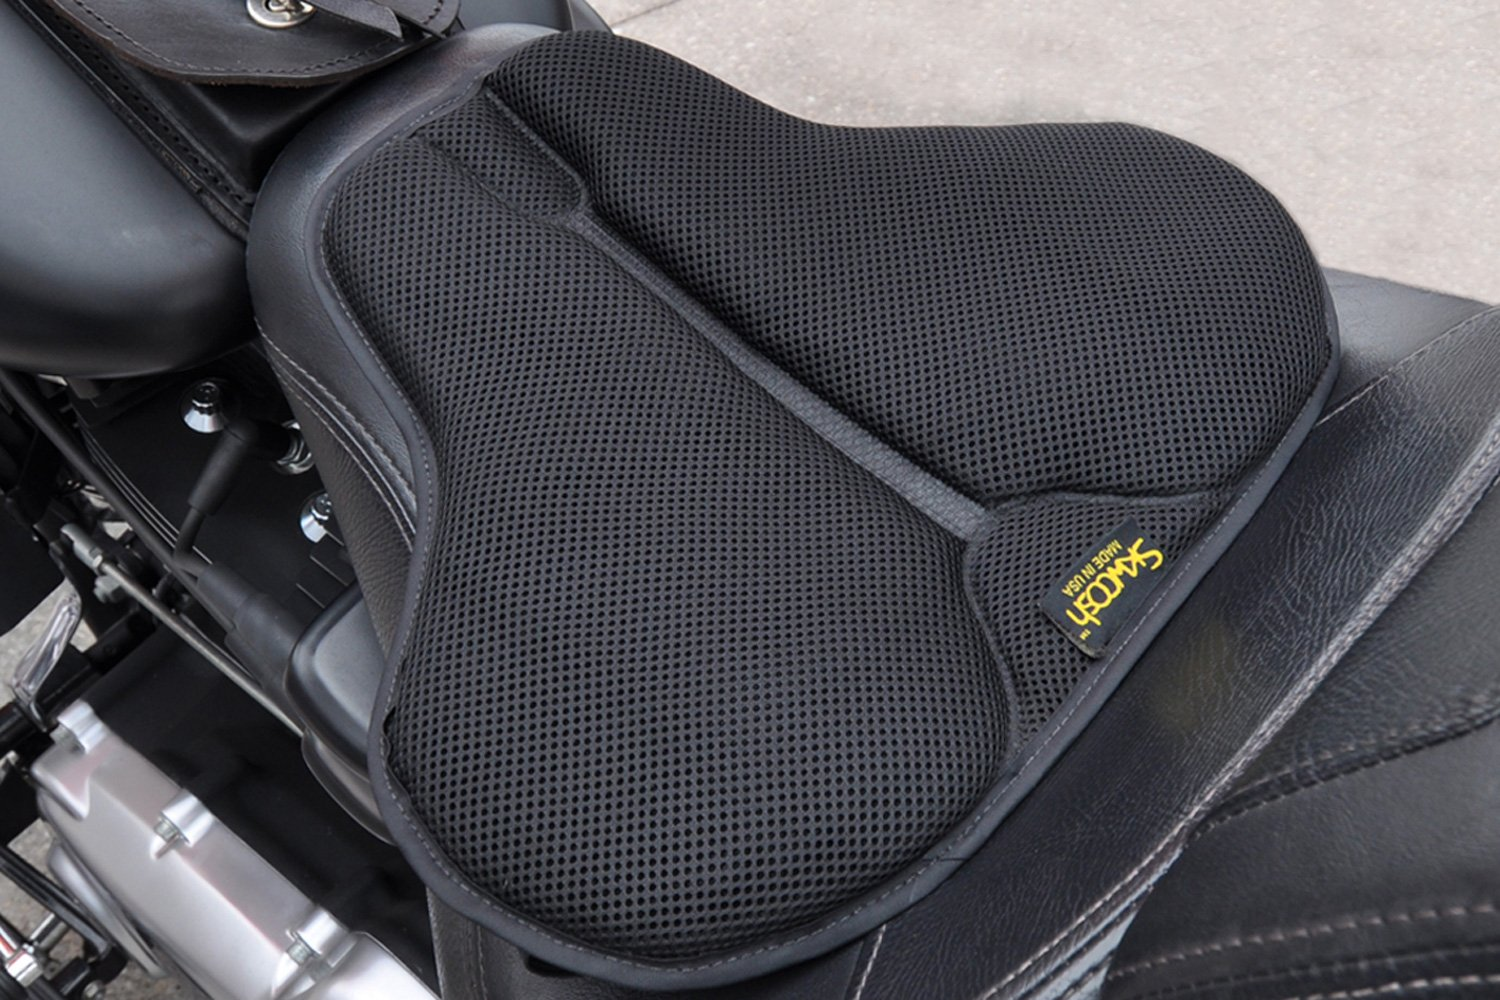 Best Harley Touring Seats Reviews: Top-5 in September 2019!